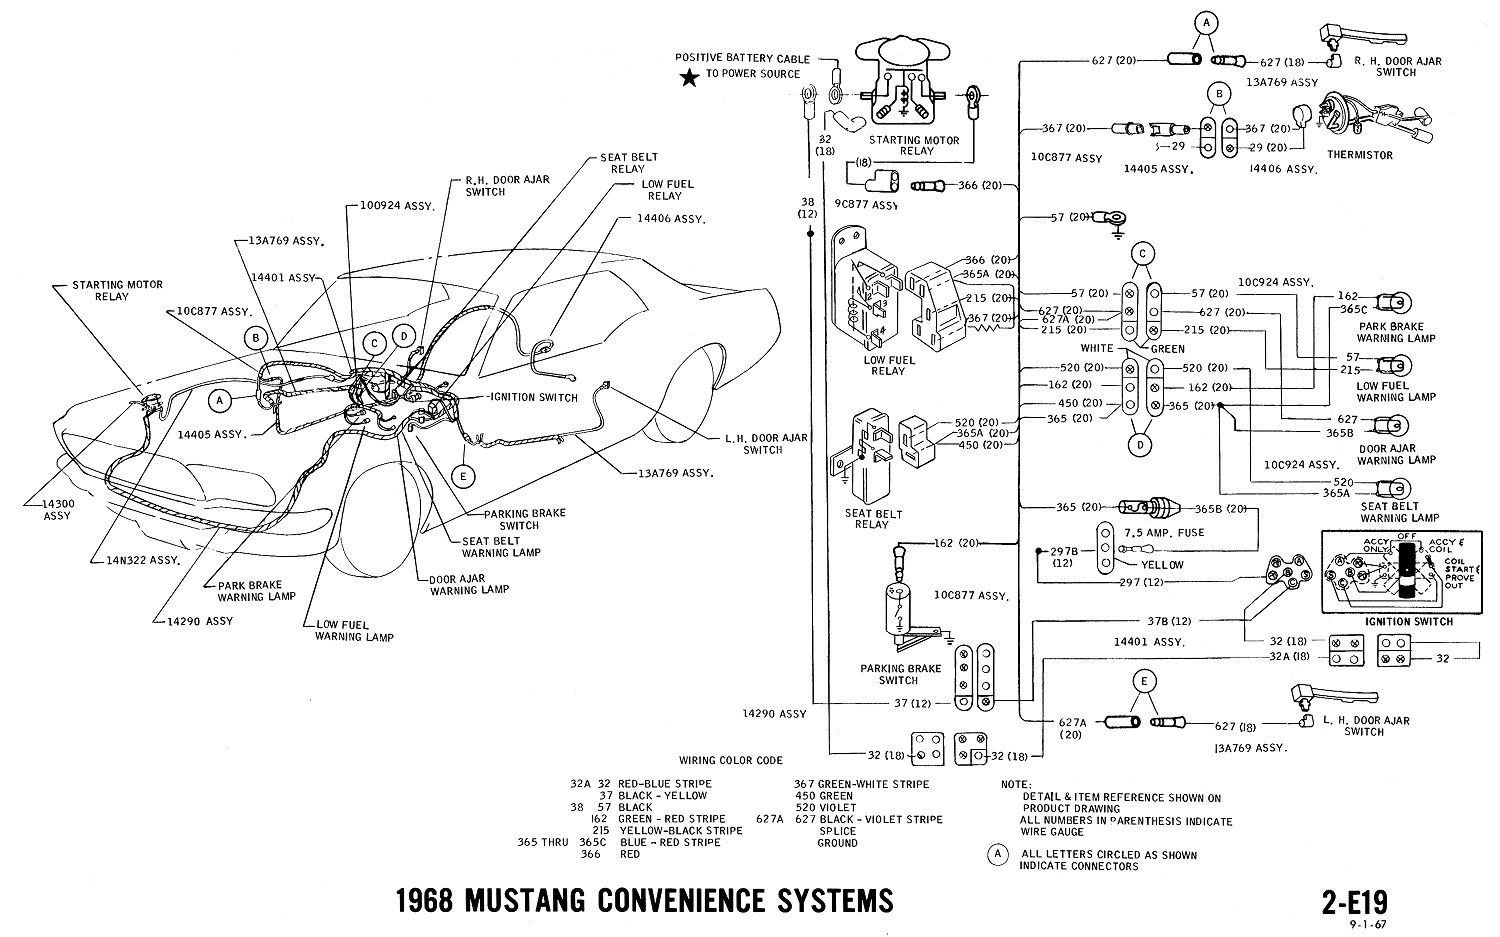 1968 mustang wiring diagram convenience systems 65 mustang dash wiring diagram 1965 ford mustang wiring diagram 1965 ford mustang wiring diagrams at arjmand.co